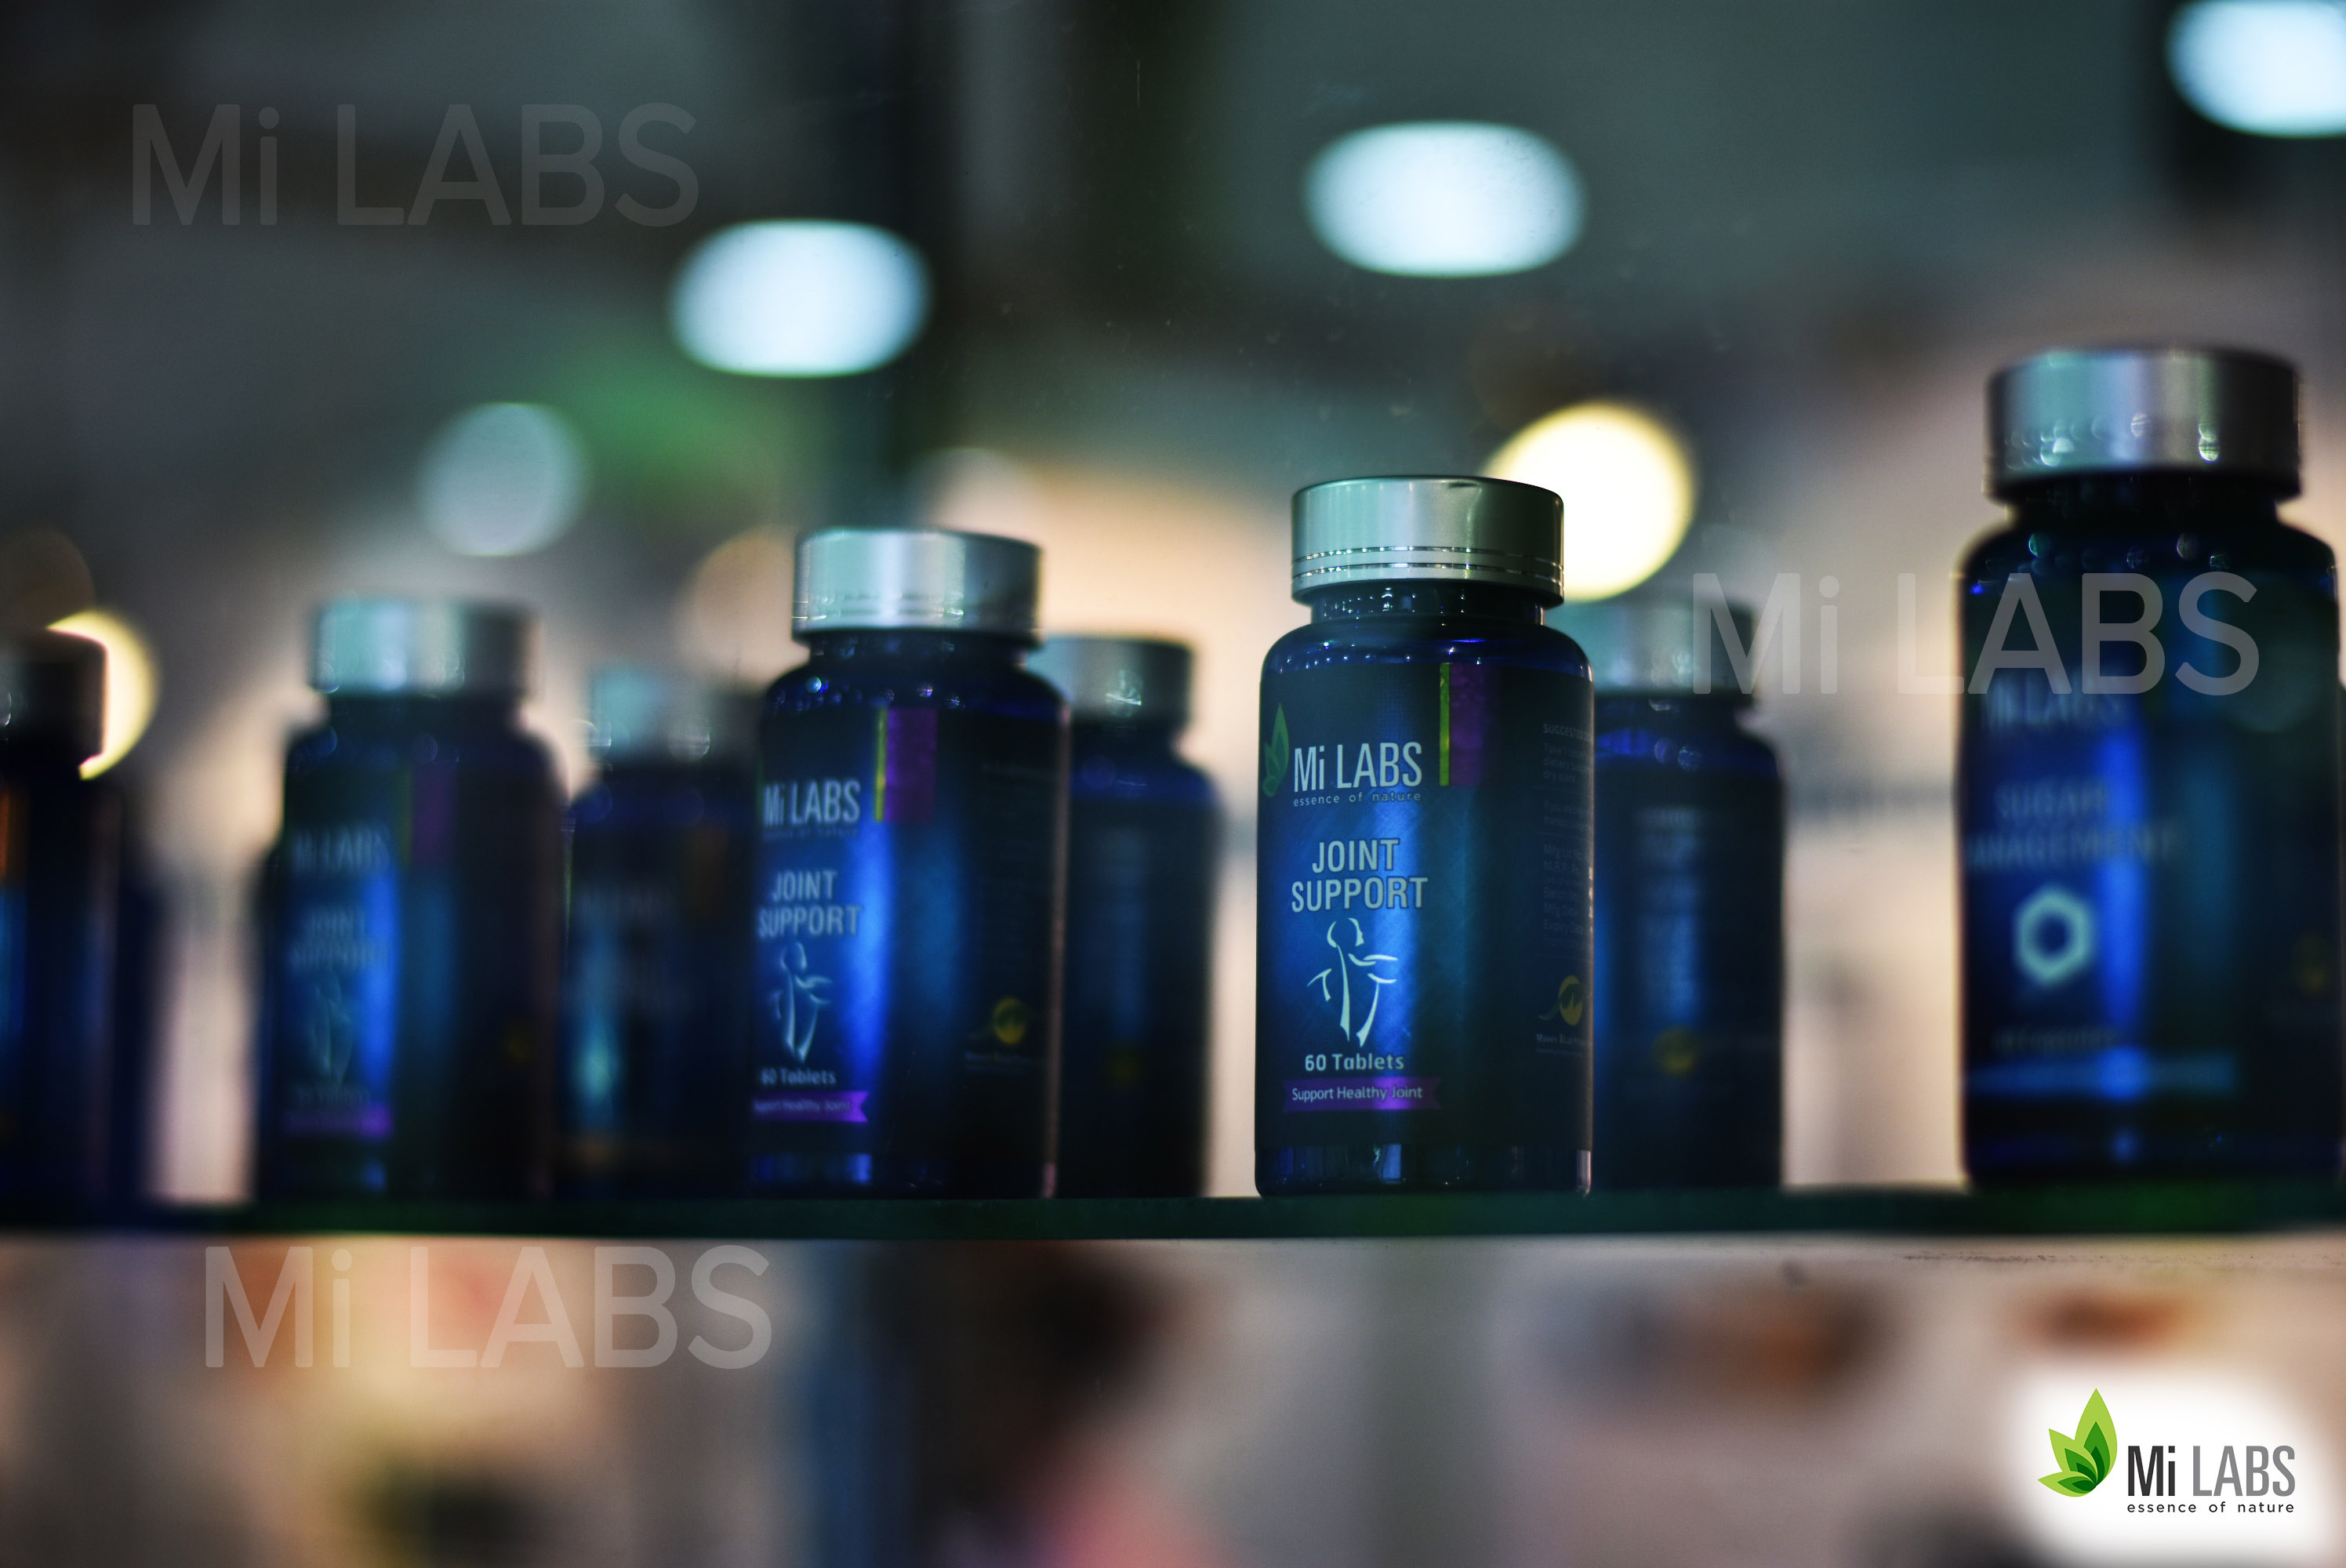 milabs scientifically researched herbal products